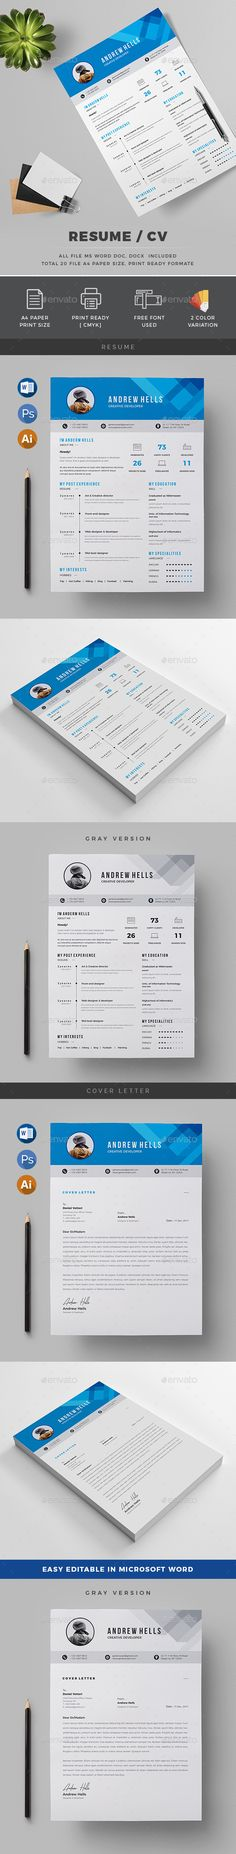 #Resume - Resumes #Stationery Download here: https://graphicriver.net/item/resume/19750247?ref=alena994